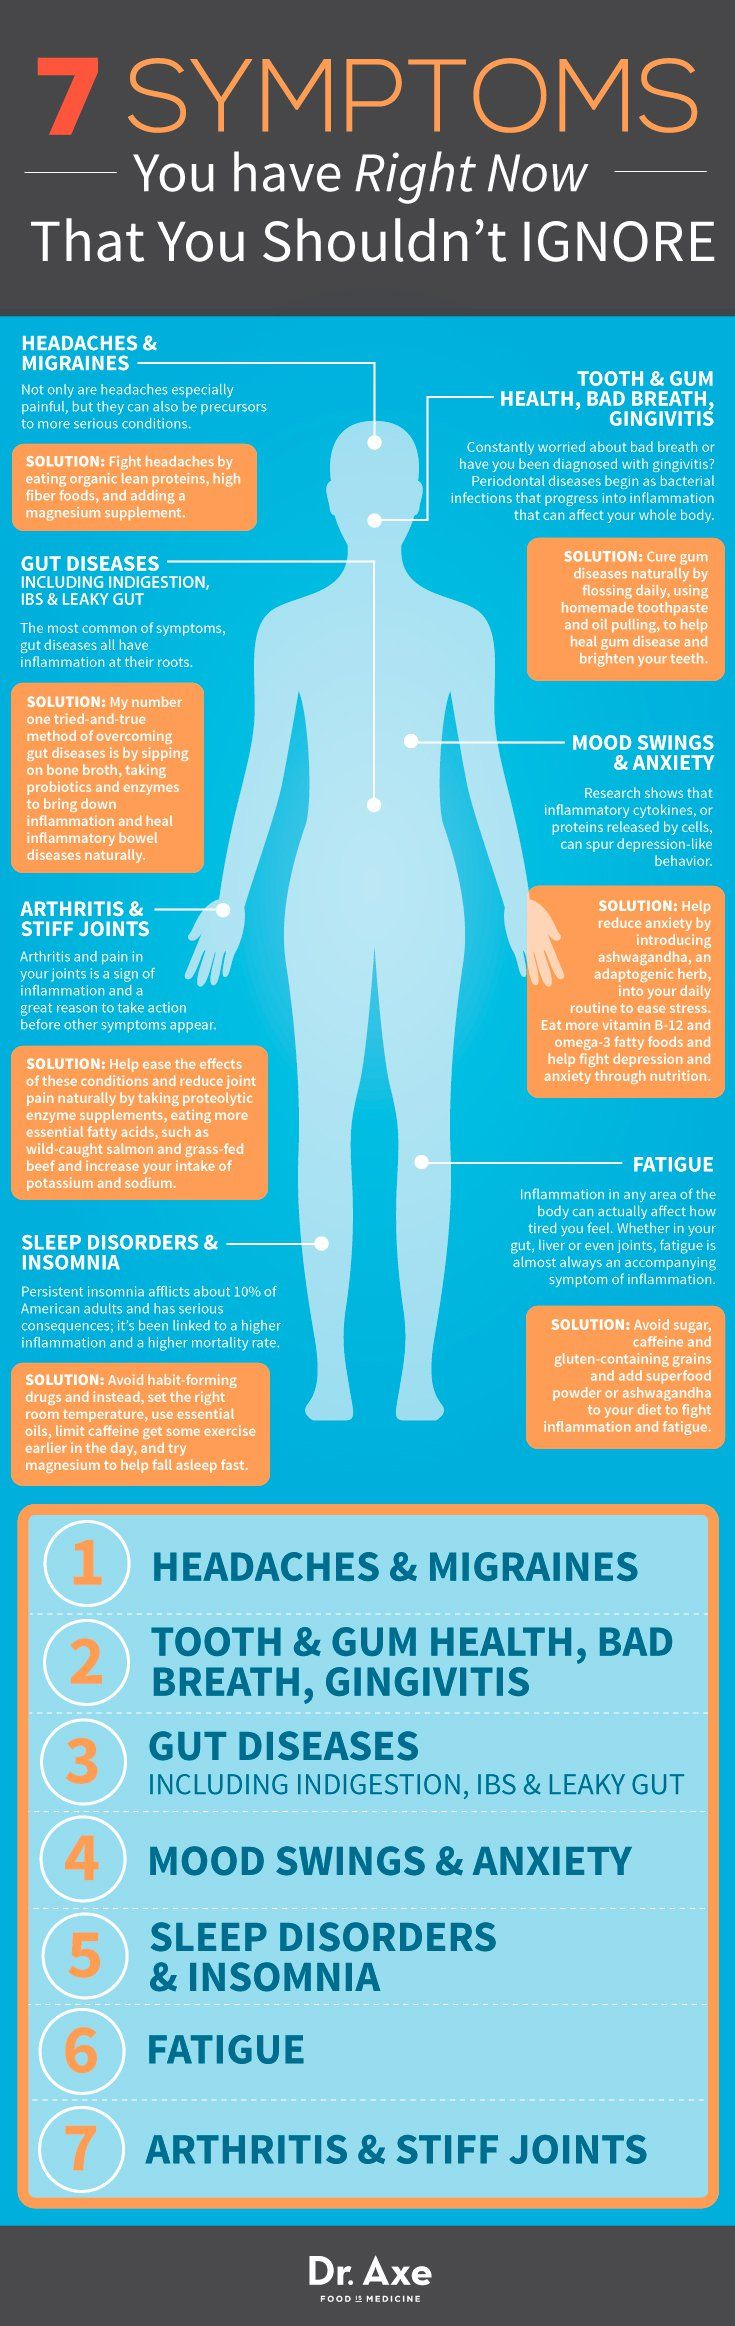 What 7 Symptoms You Have Right Now That You Shouldn't Ignore